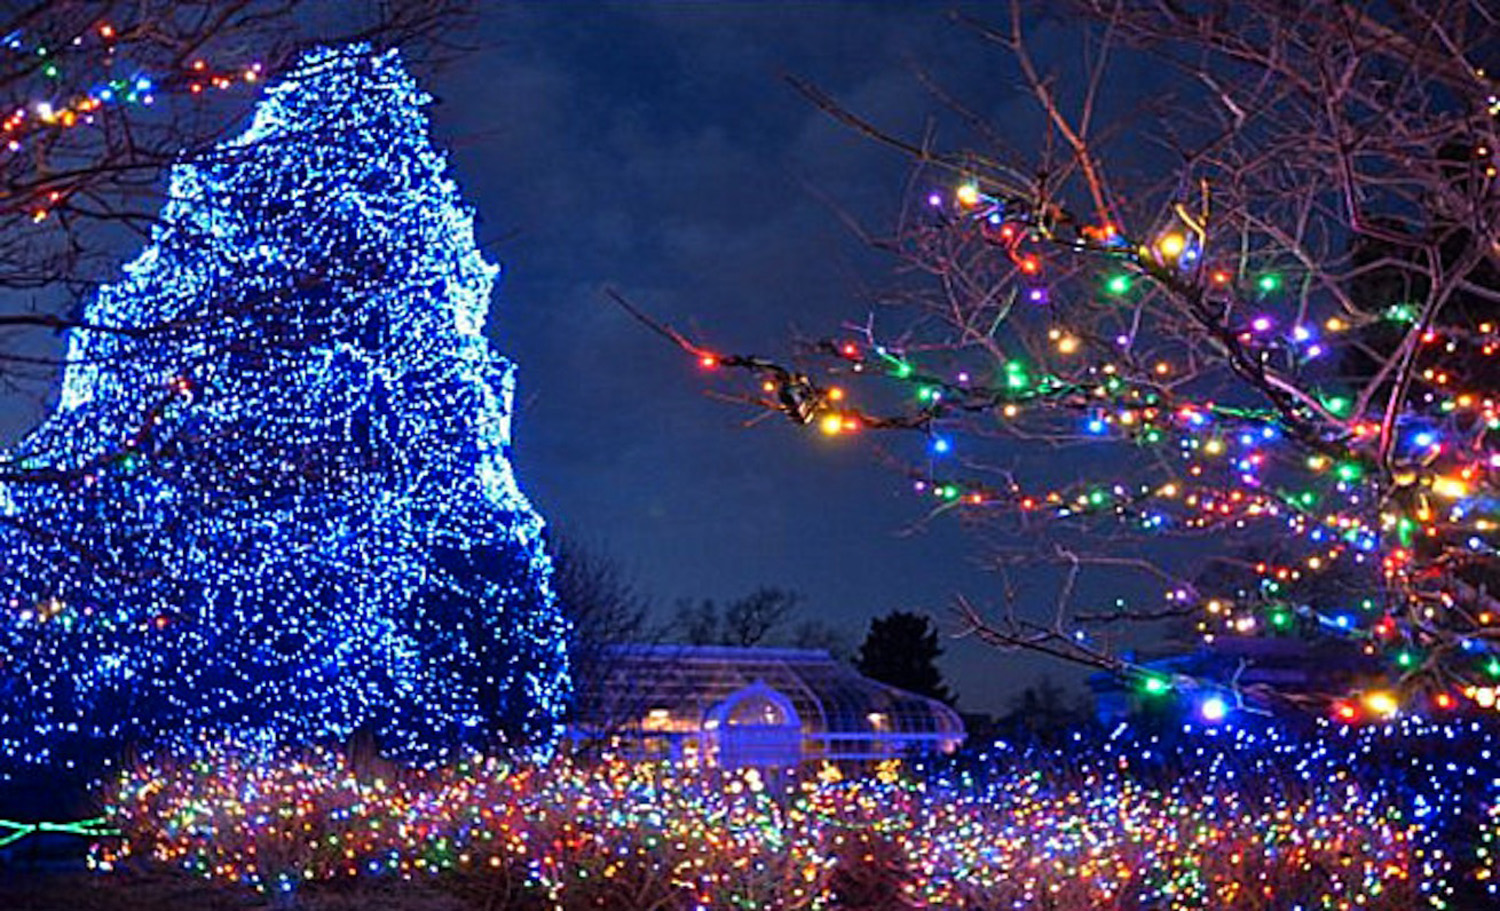 Christmas Celebration In America.The 8 Most Beautiful Christmas Trees In America American